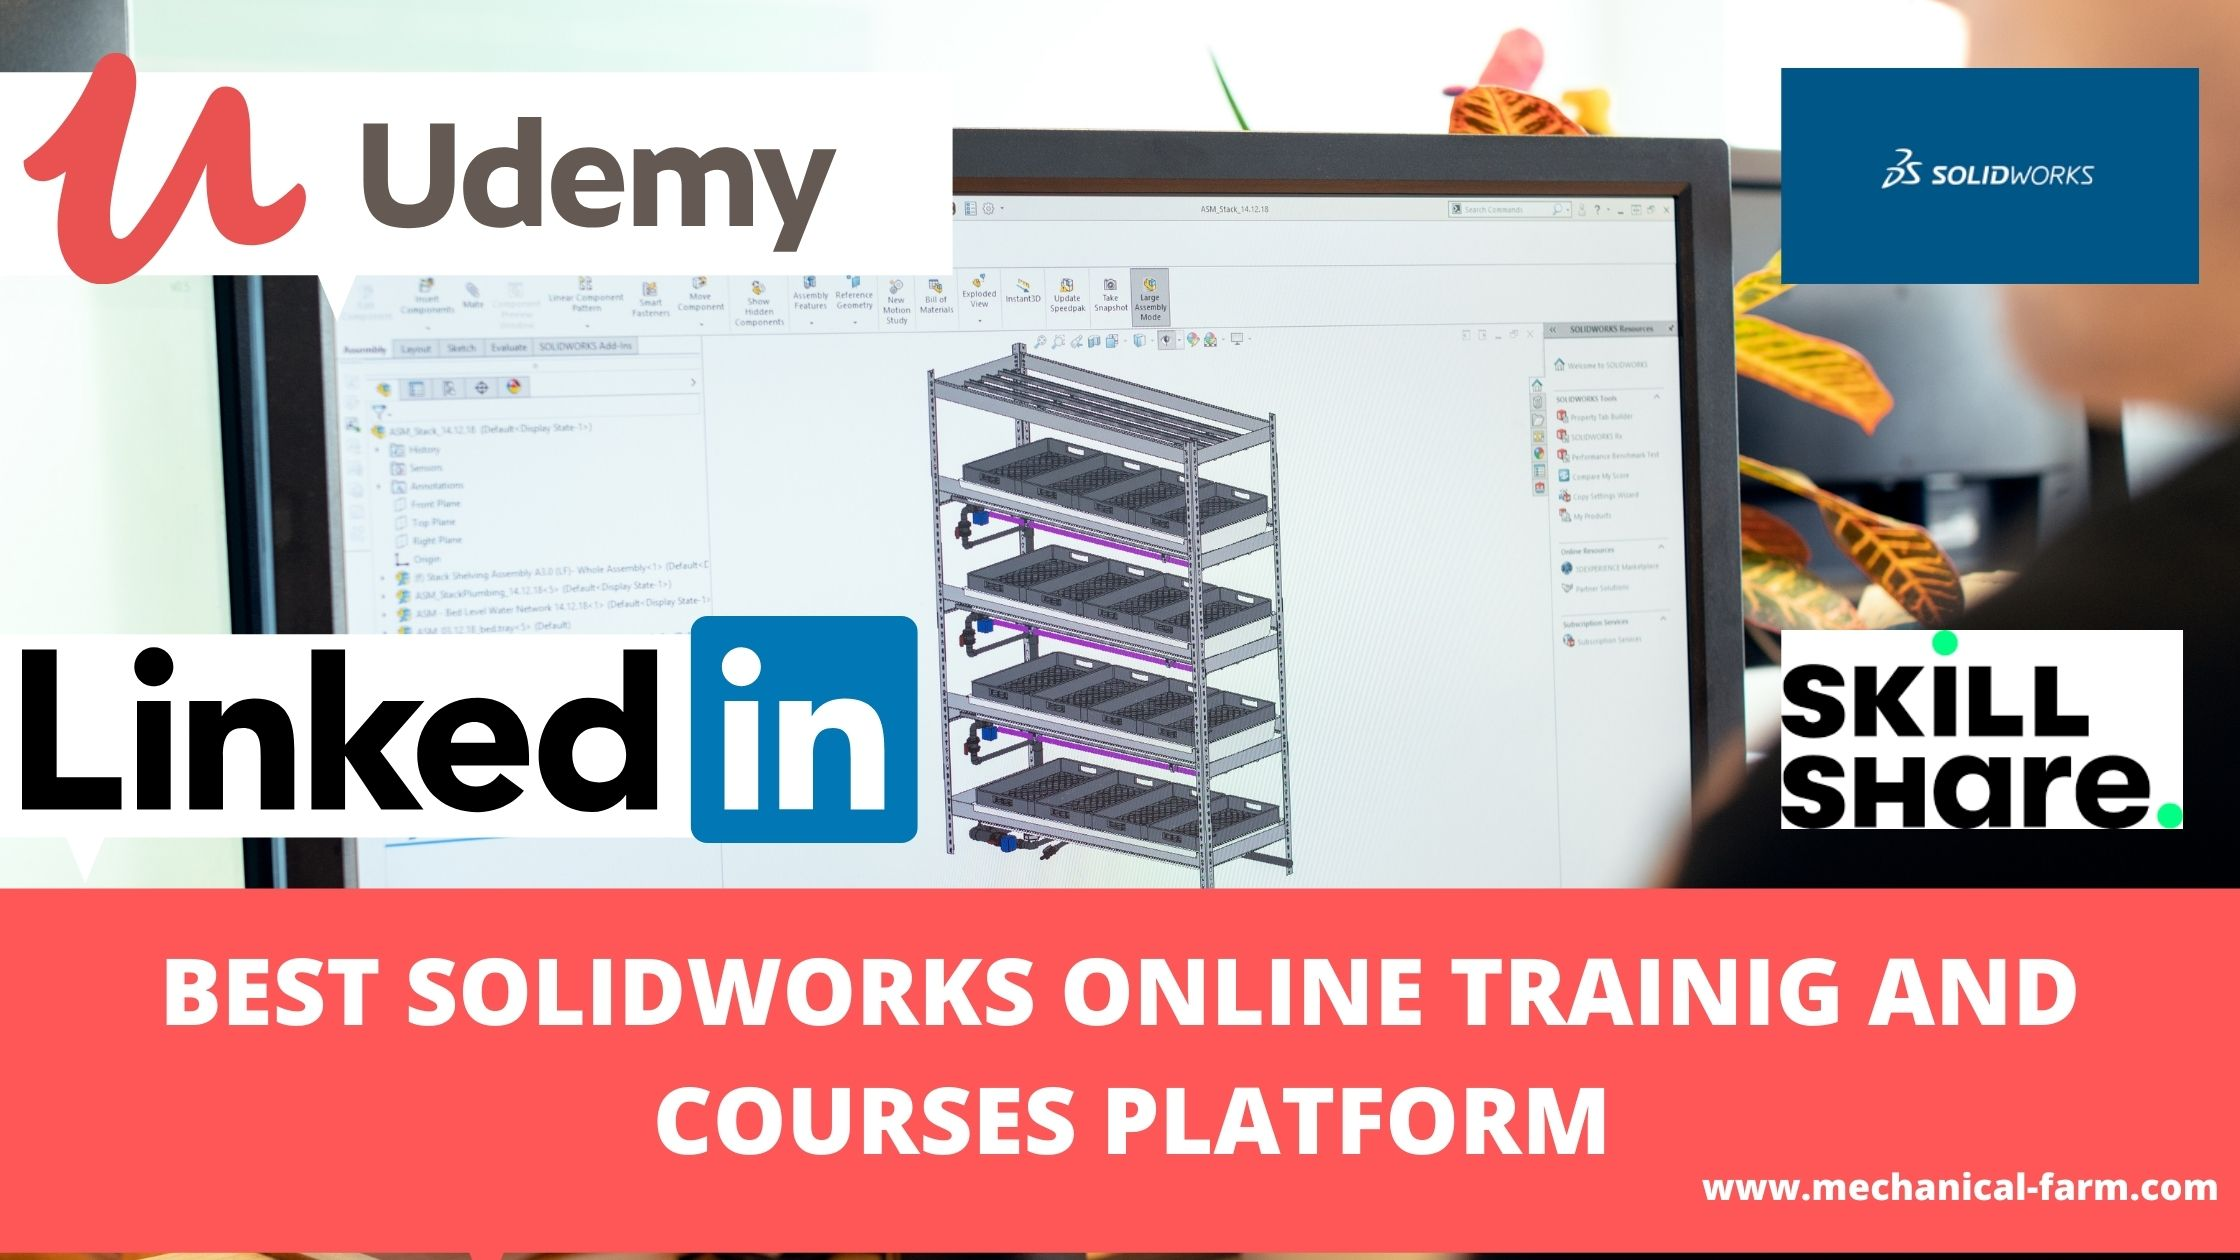 4 Best Solidworks Online Training platforms, Online Solidworks Courses Platforms, solidworks online training,solidworks,solidworks training,solidworks training courses,solidworks tutorial,solidworks tutorials,solidworks beginners,learn solidworks,online solidworks,solidworks training videos,basic steps of solidworks,online solidworks training,certified solidworks training,learn solidworks online,solidworks online course,solidworks course,solidworks lessons,solidworks online training courses free,solidworks toturials & engineering news,solidworks (software)